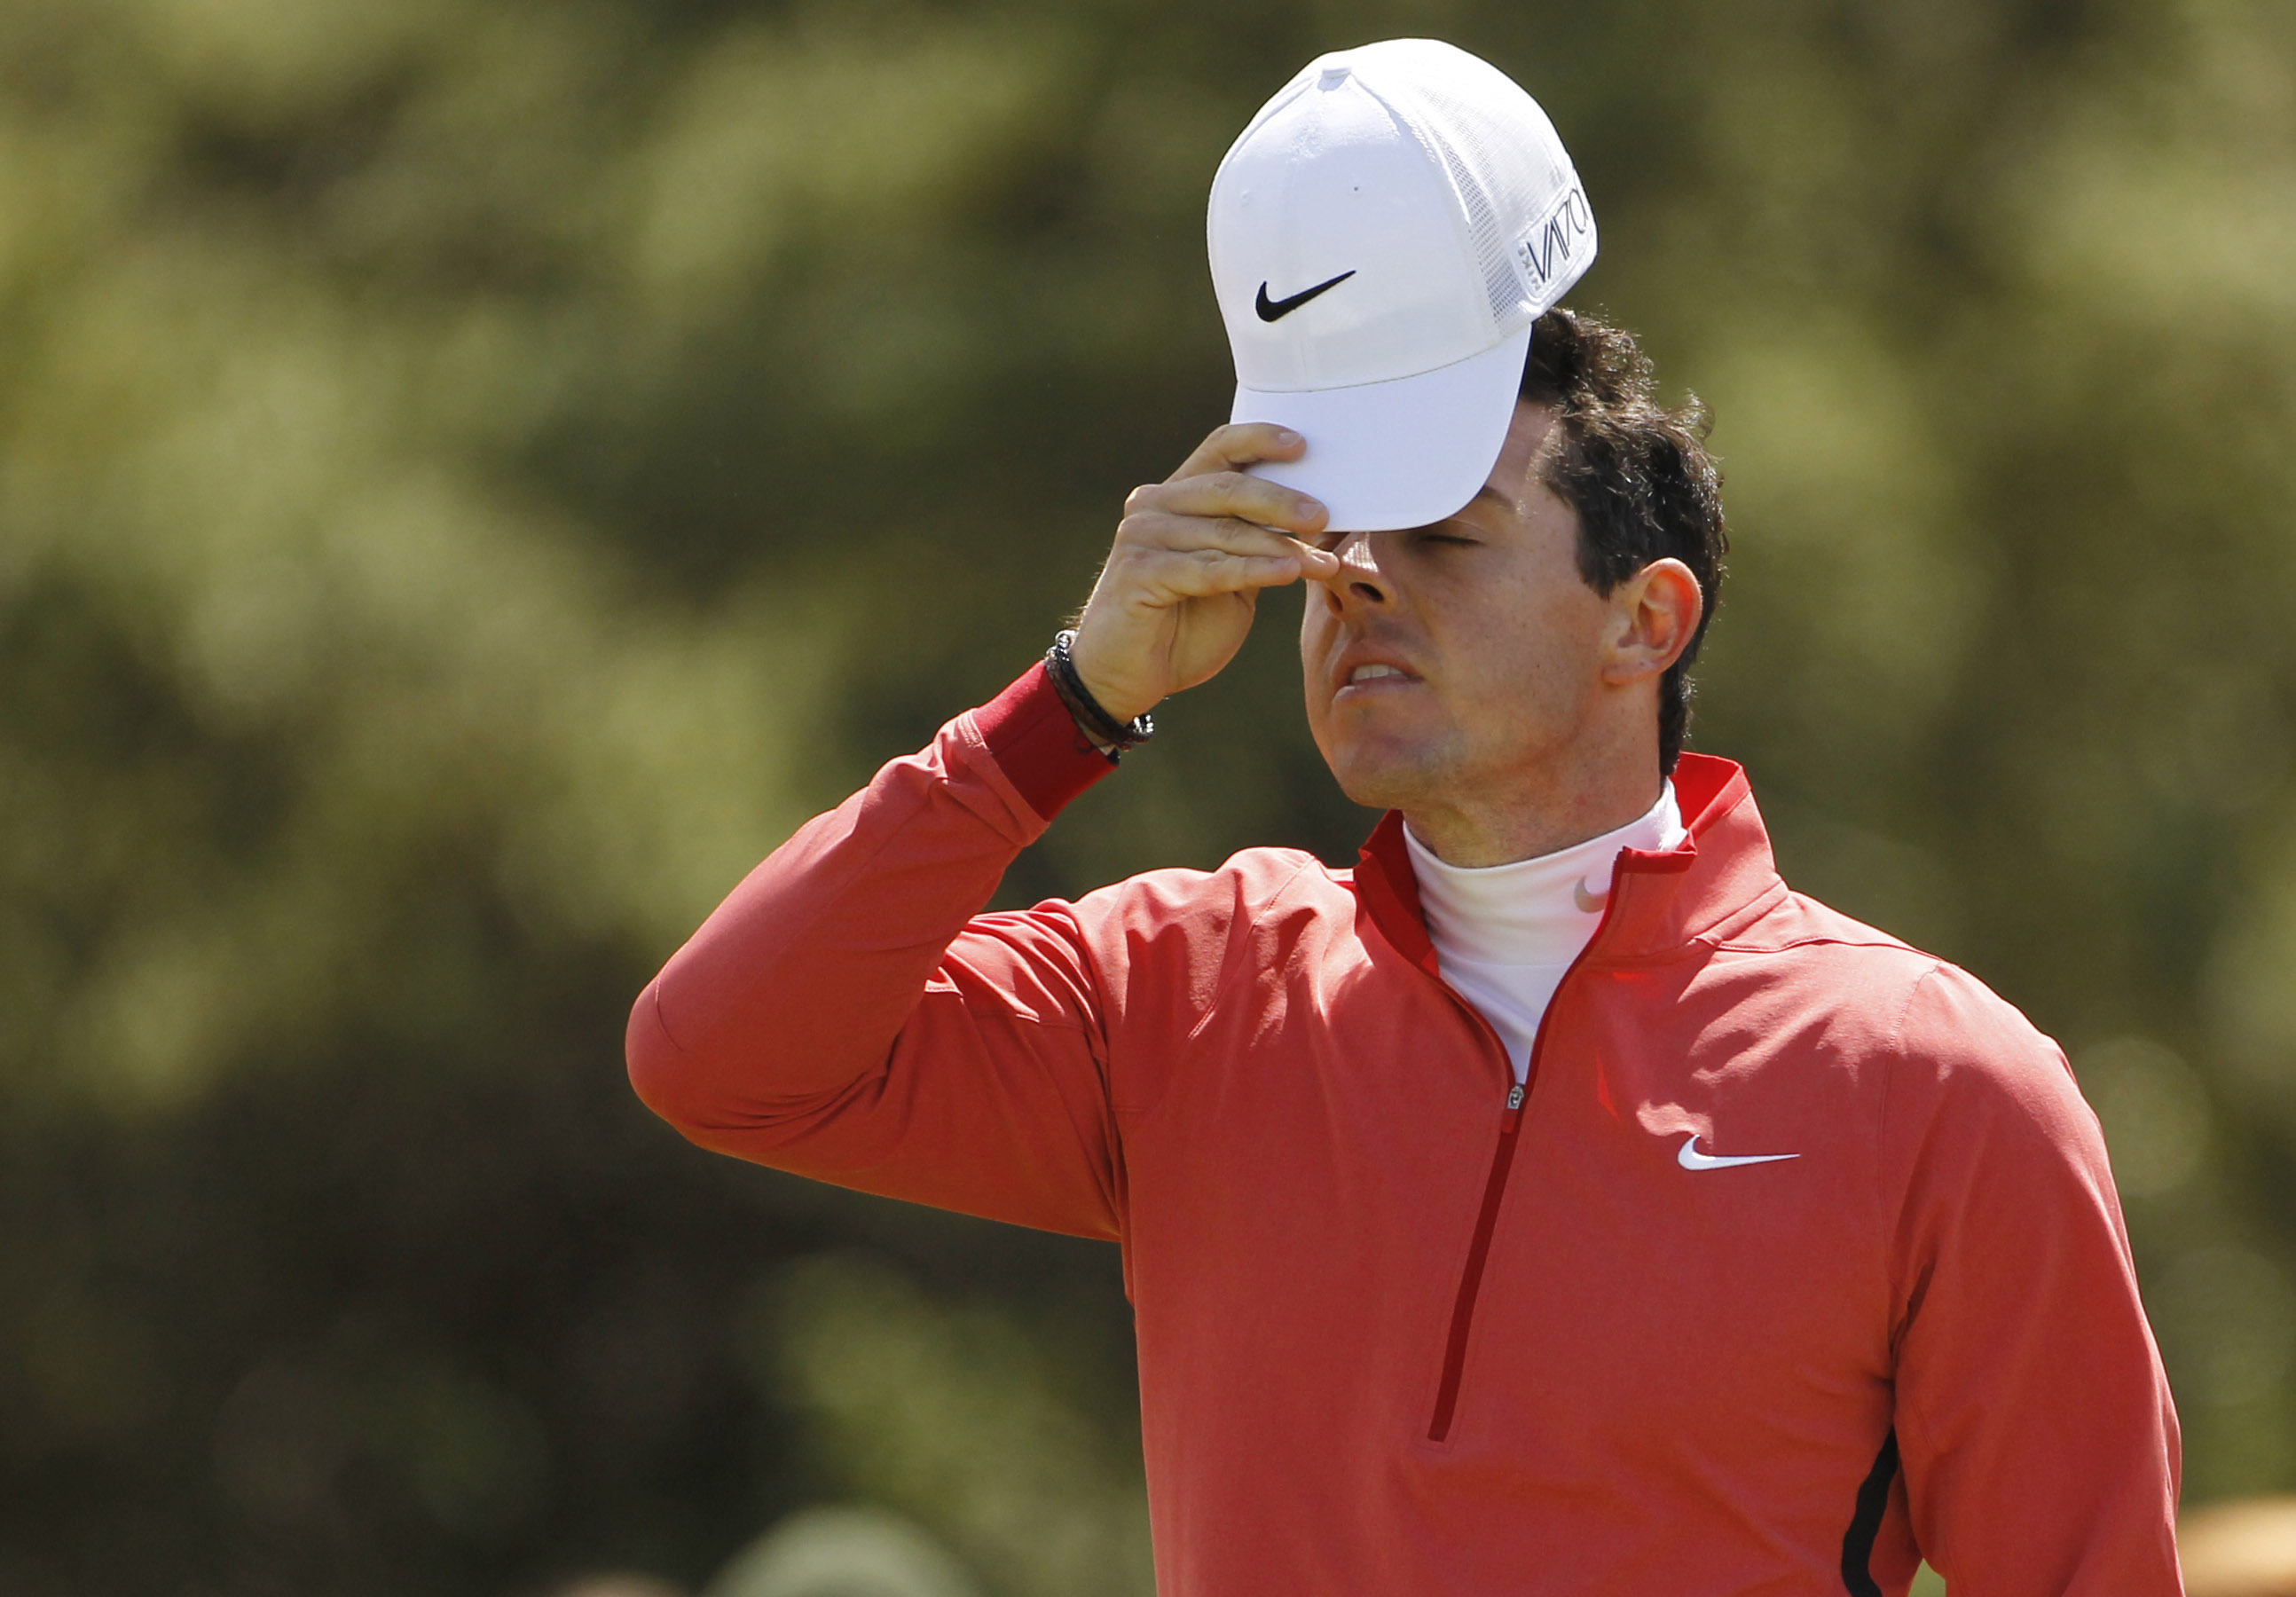 FILE - In this May 28, 2015, file photo, Northern Ireland's Rory McIlroy looks dejected after missing a putt on the ninth hole during the first round of the Irish Open Golf Championship at Royal County Down, Newcastle, Northern Ireland. Returning to the s